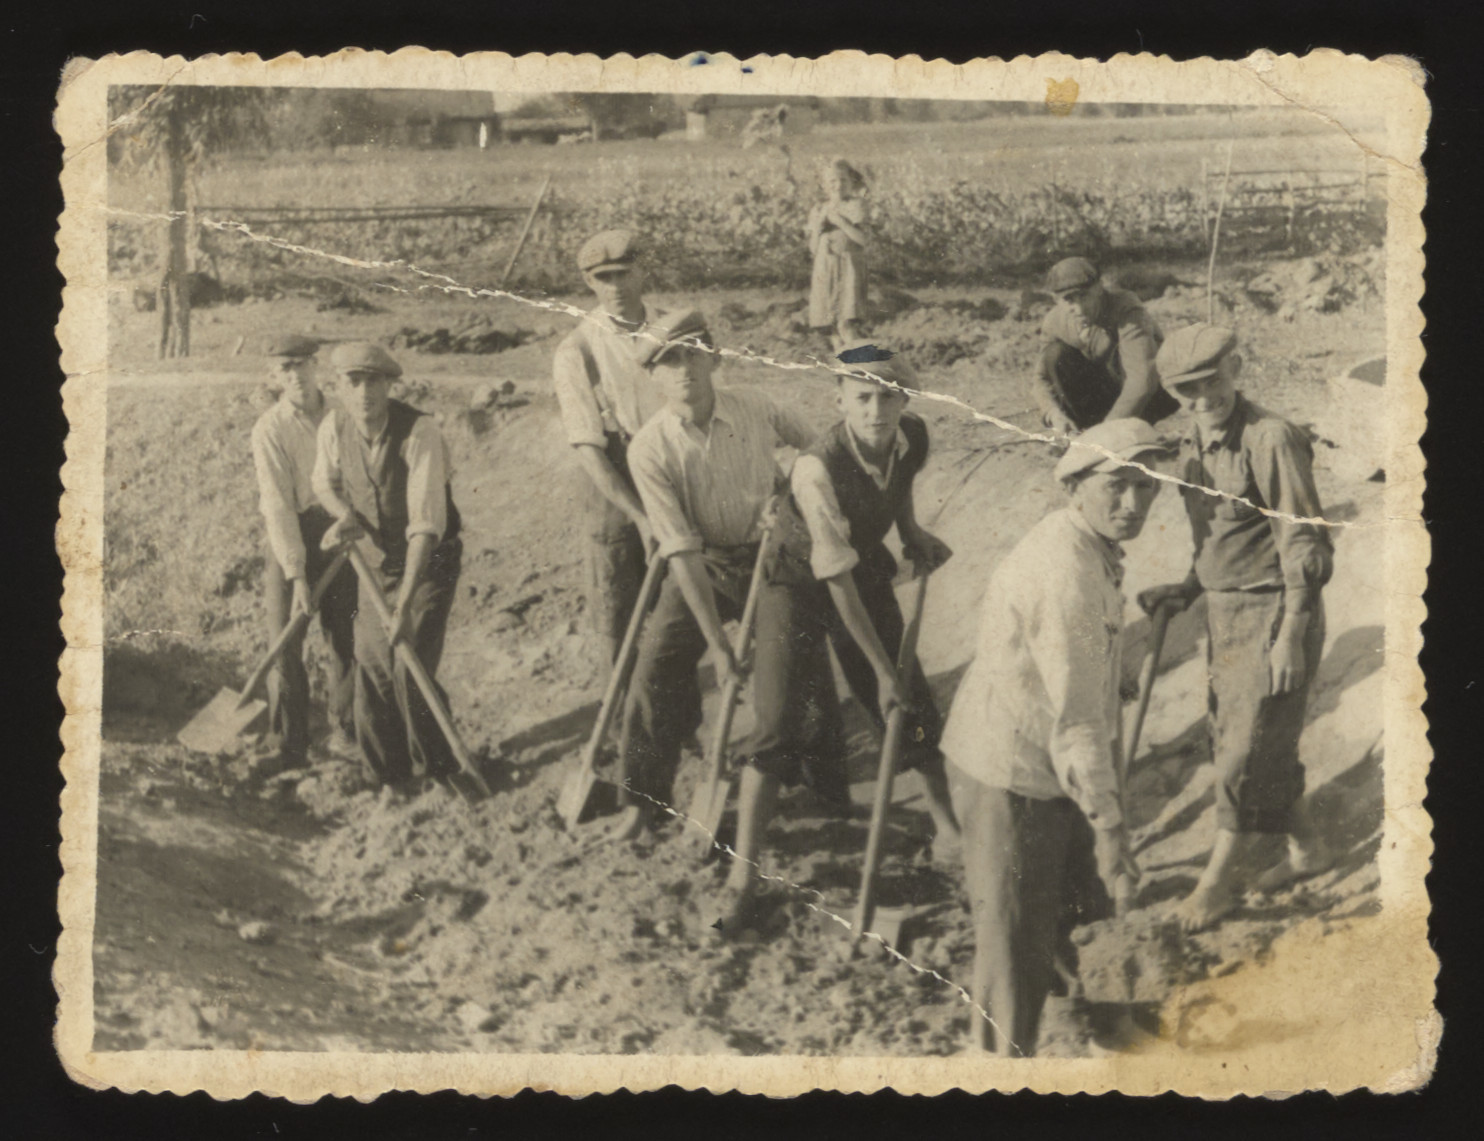 Jewish men from Kozienice at forced labor digging a drainage channel.  Among those pictured is Baruch Aaron Szabason (fifth from the left,16 years old). Baruch, who perished during the war, was the nephew of the donor, Lewis Szabason.  Also pictured are Orbach (third from left), Mendel Sierota (fourth from left), Yankel Mandelbaum (second from right) and Shlomo Miller (far right).